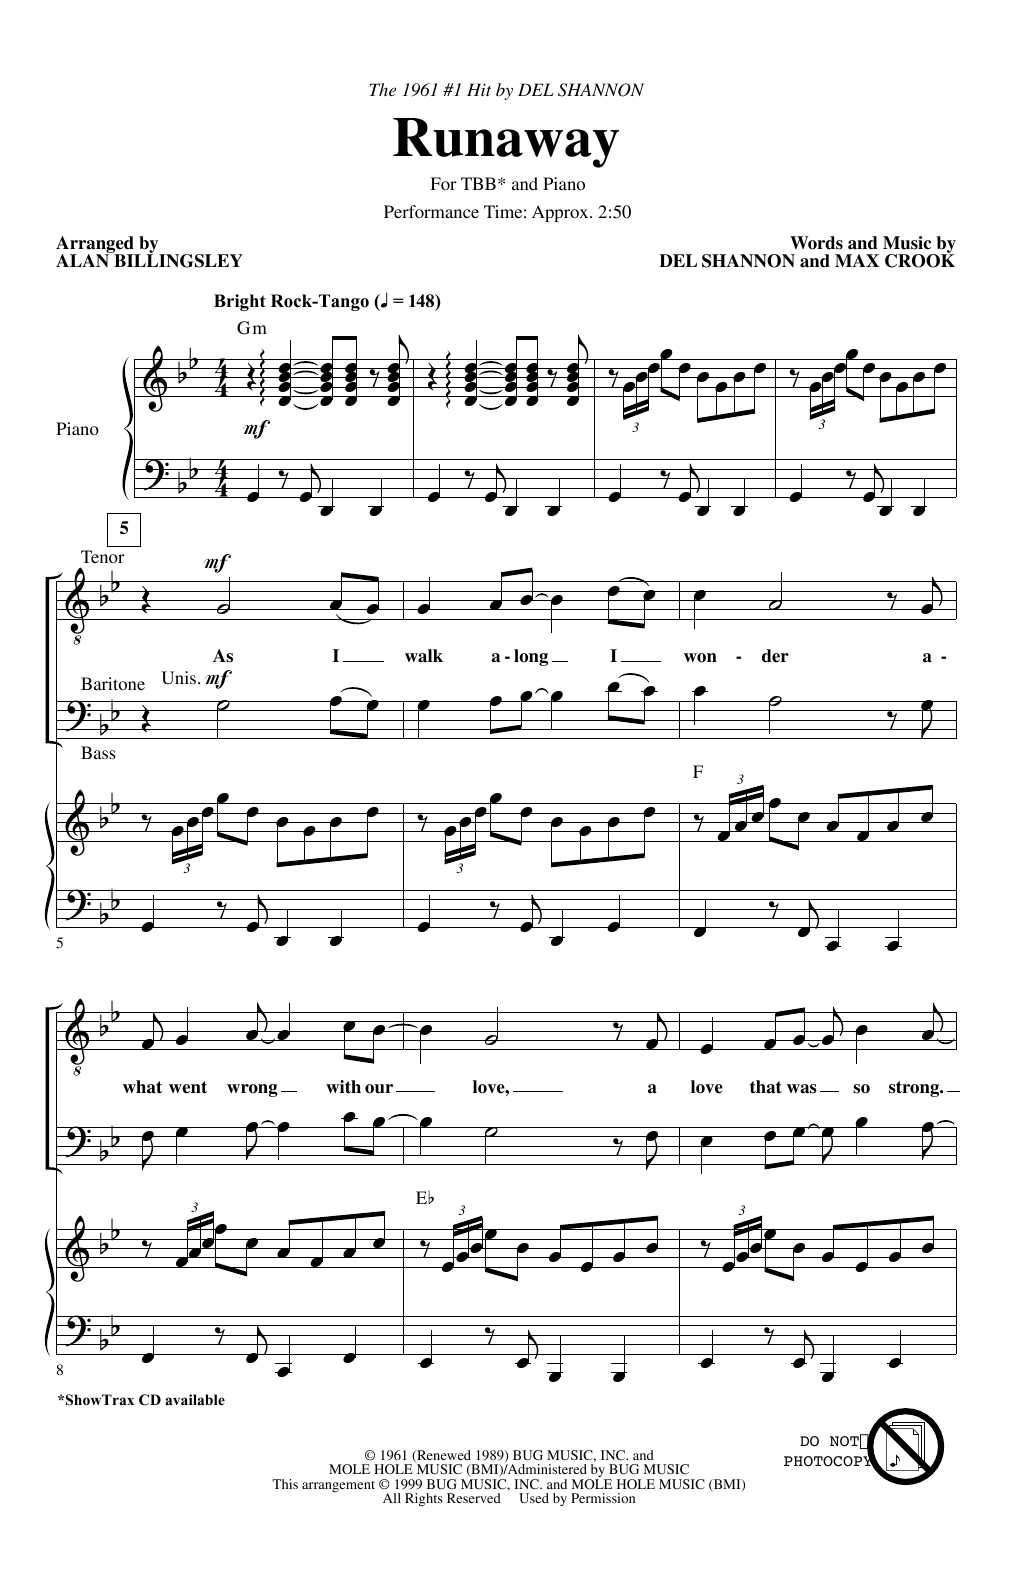 Download Del Shannon 'Runaway (arr. Alan Billingsley)' Digital Sheet Music Notes & Chords and start playing in minutes